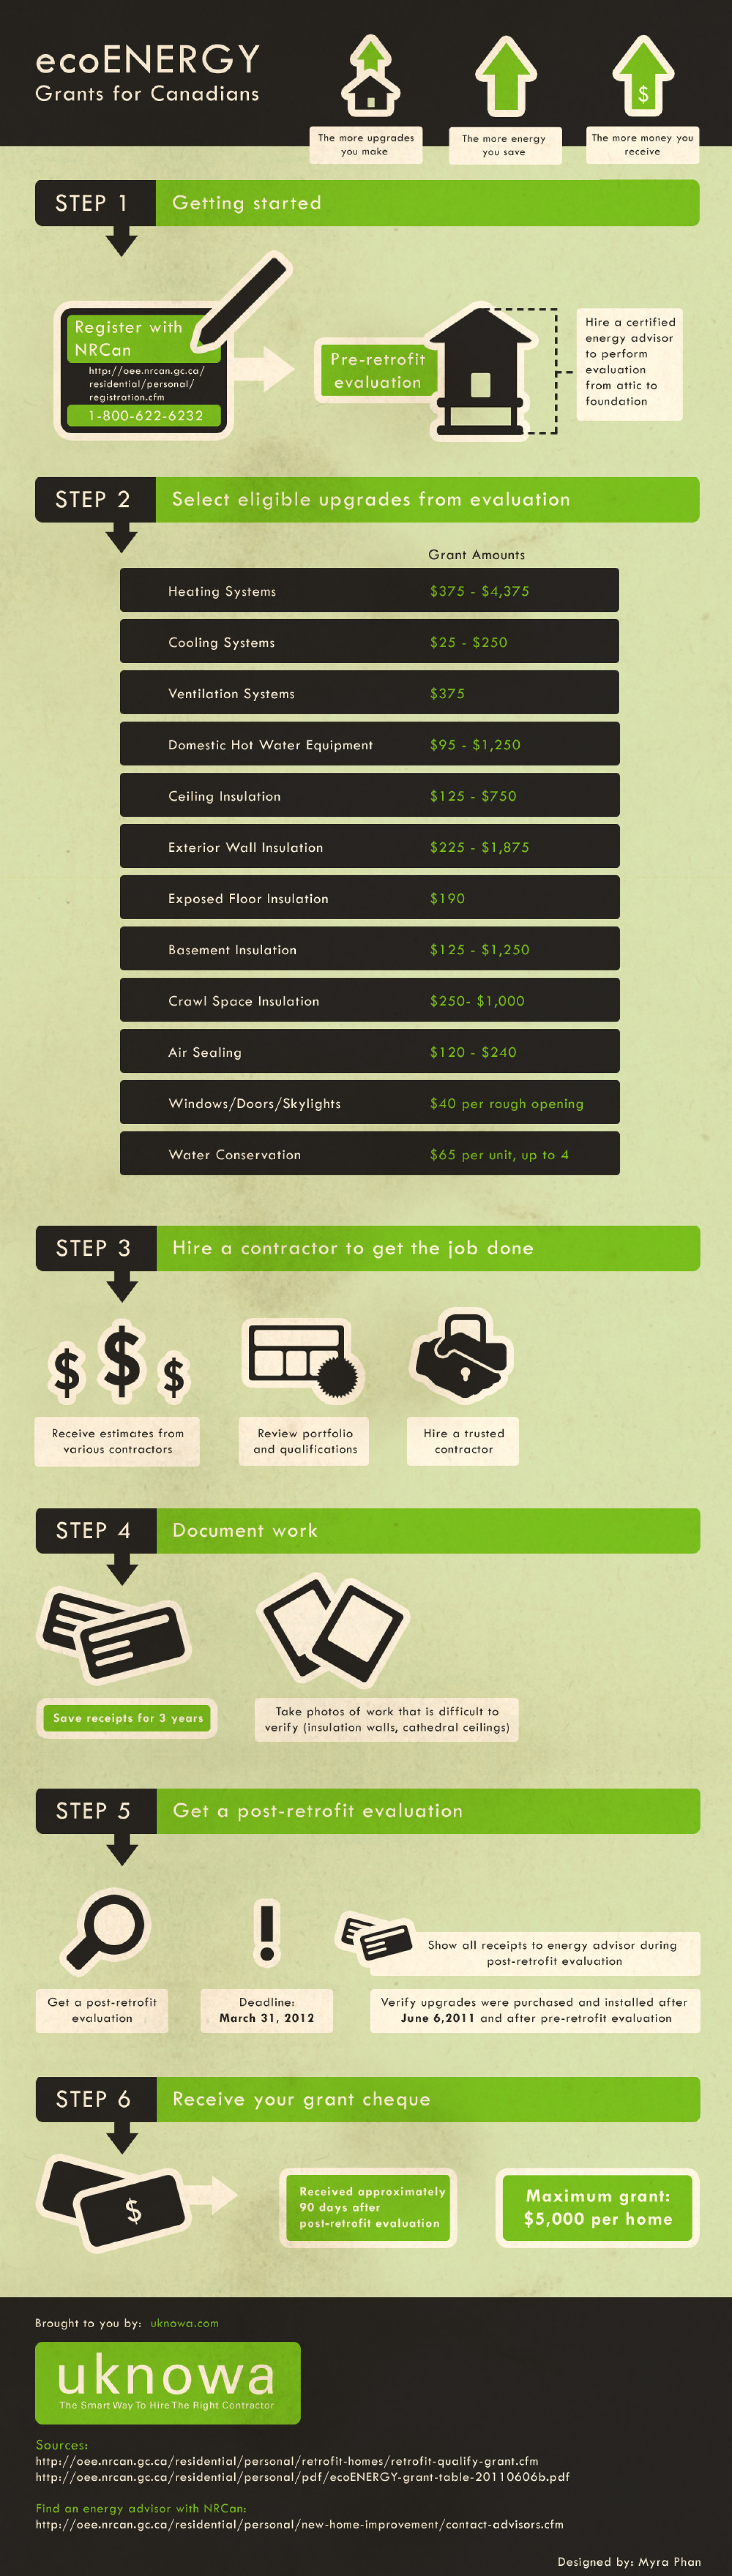 ecoEnergy Retrofit Program Infographic